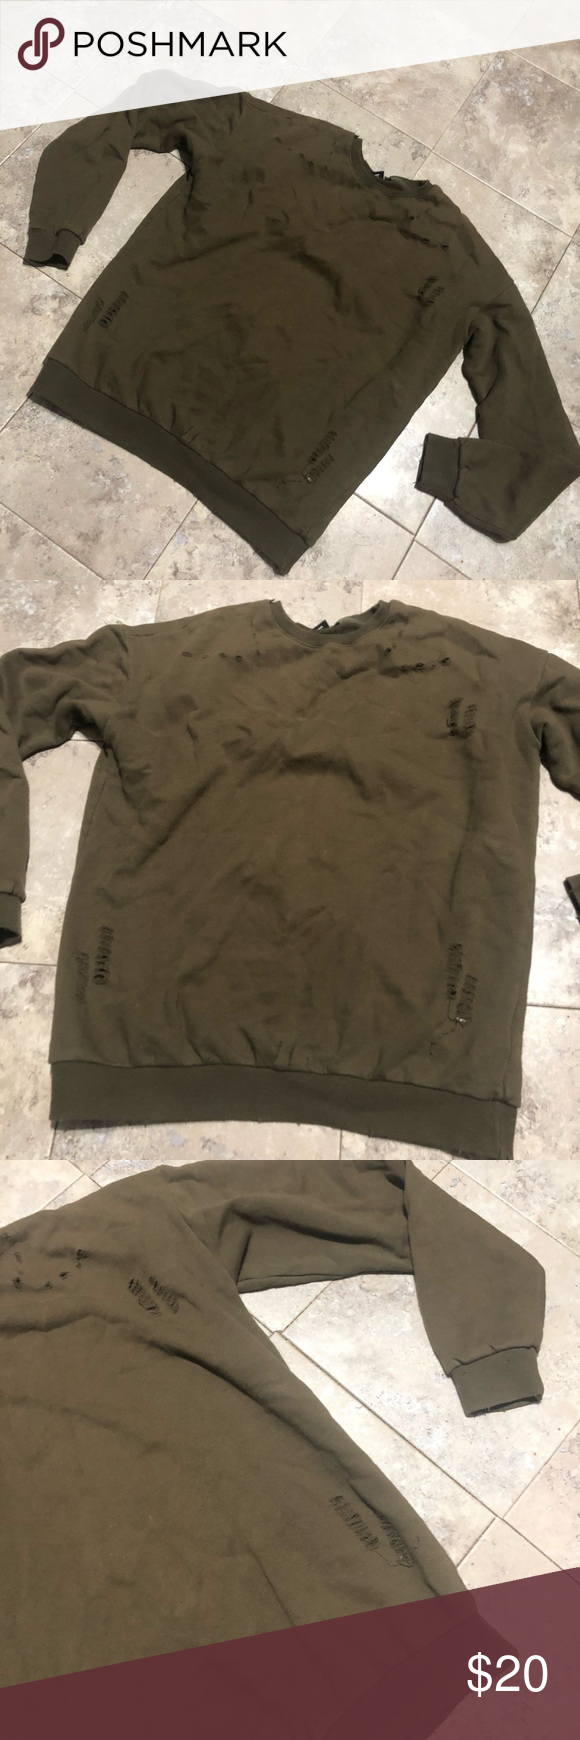 Pullover Sweatshirt Olive Or Army Green With Light Distressing Size Large Tags Nike Yeezy Adidas Adidas Tref Active Wear Clothes Design Sweatshirts [ 1740 x 580 Pixel ]